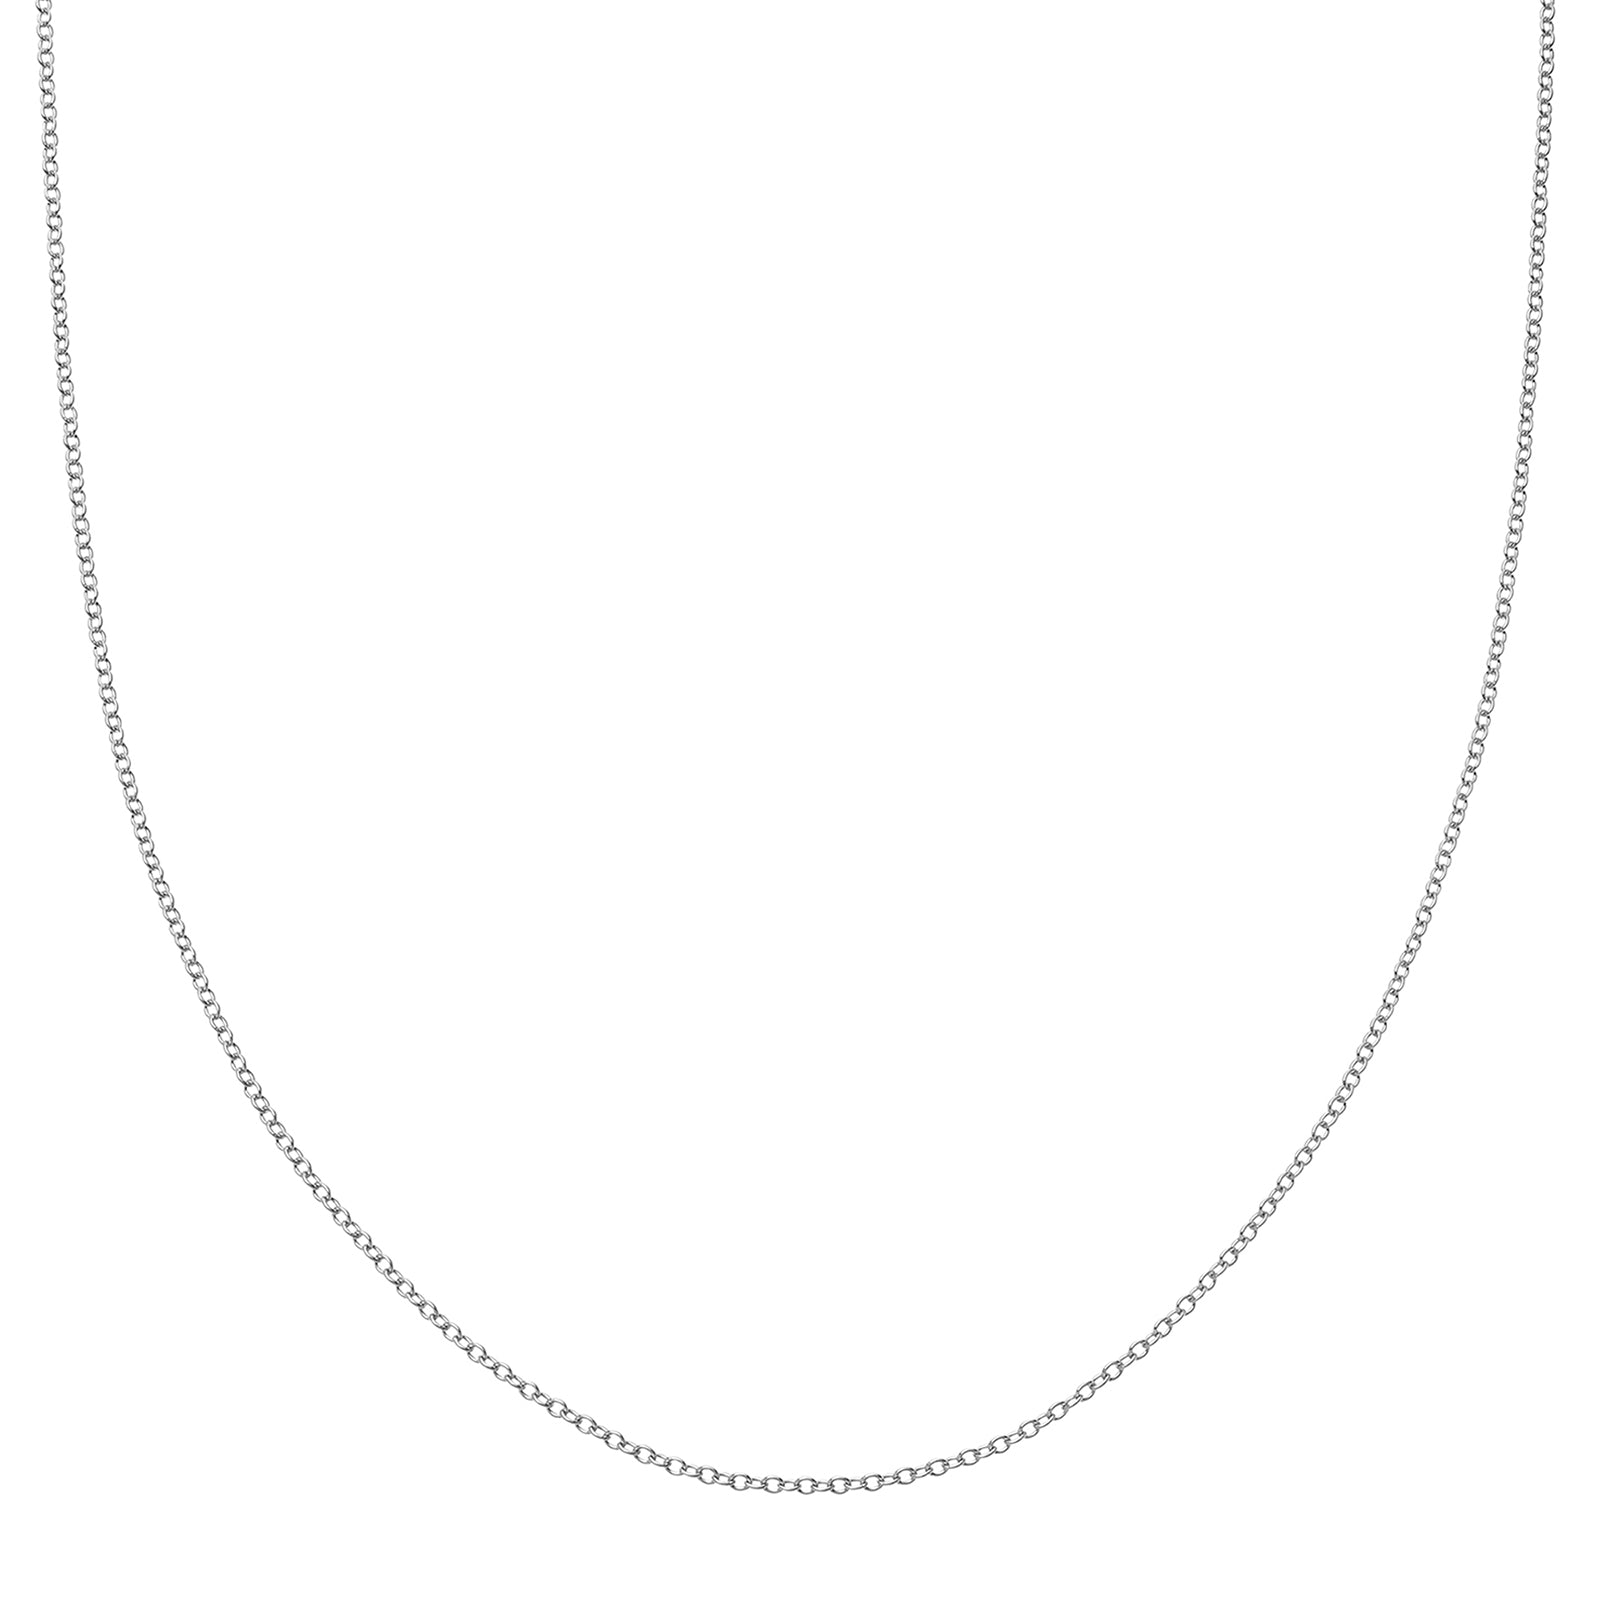 "Loquet 18"" Chain - White Gold - Necklaces - Broken English Jewelry"